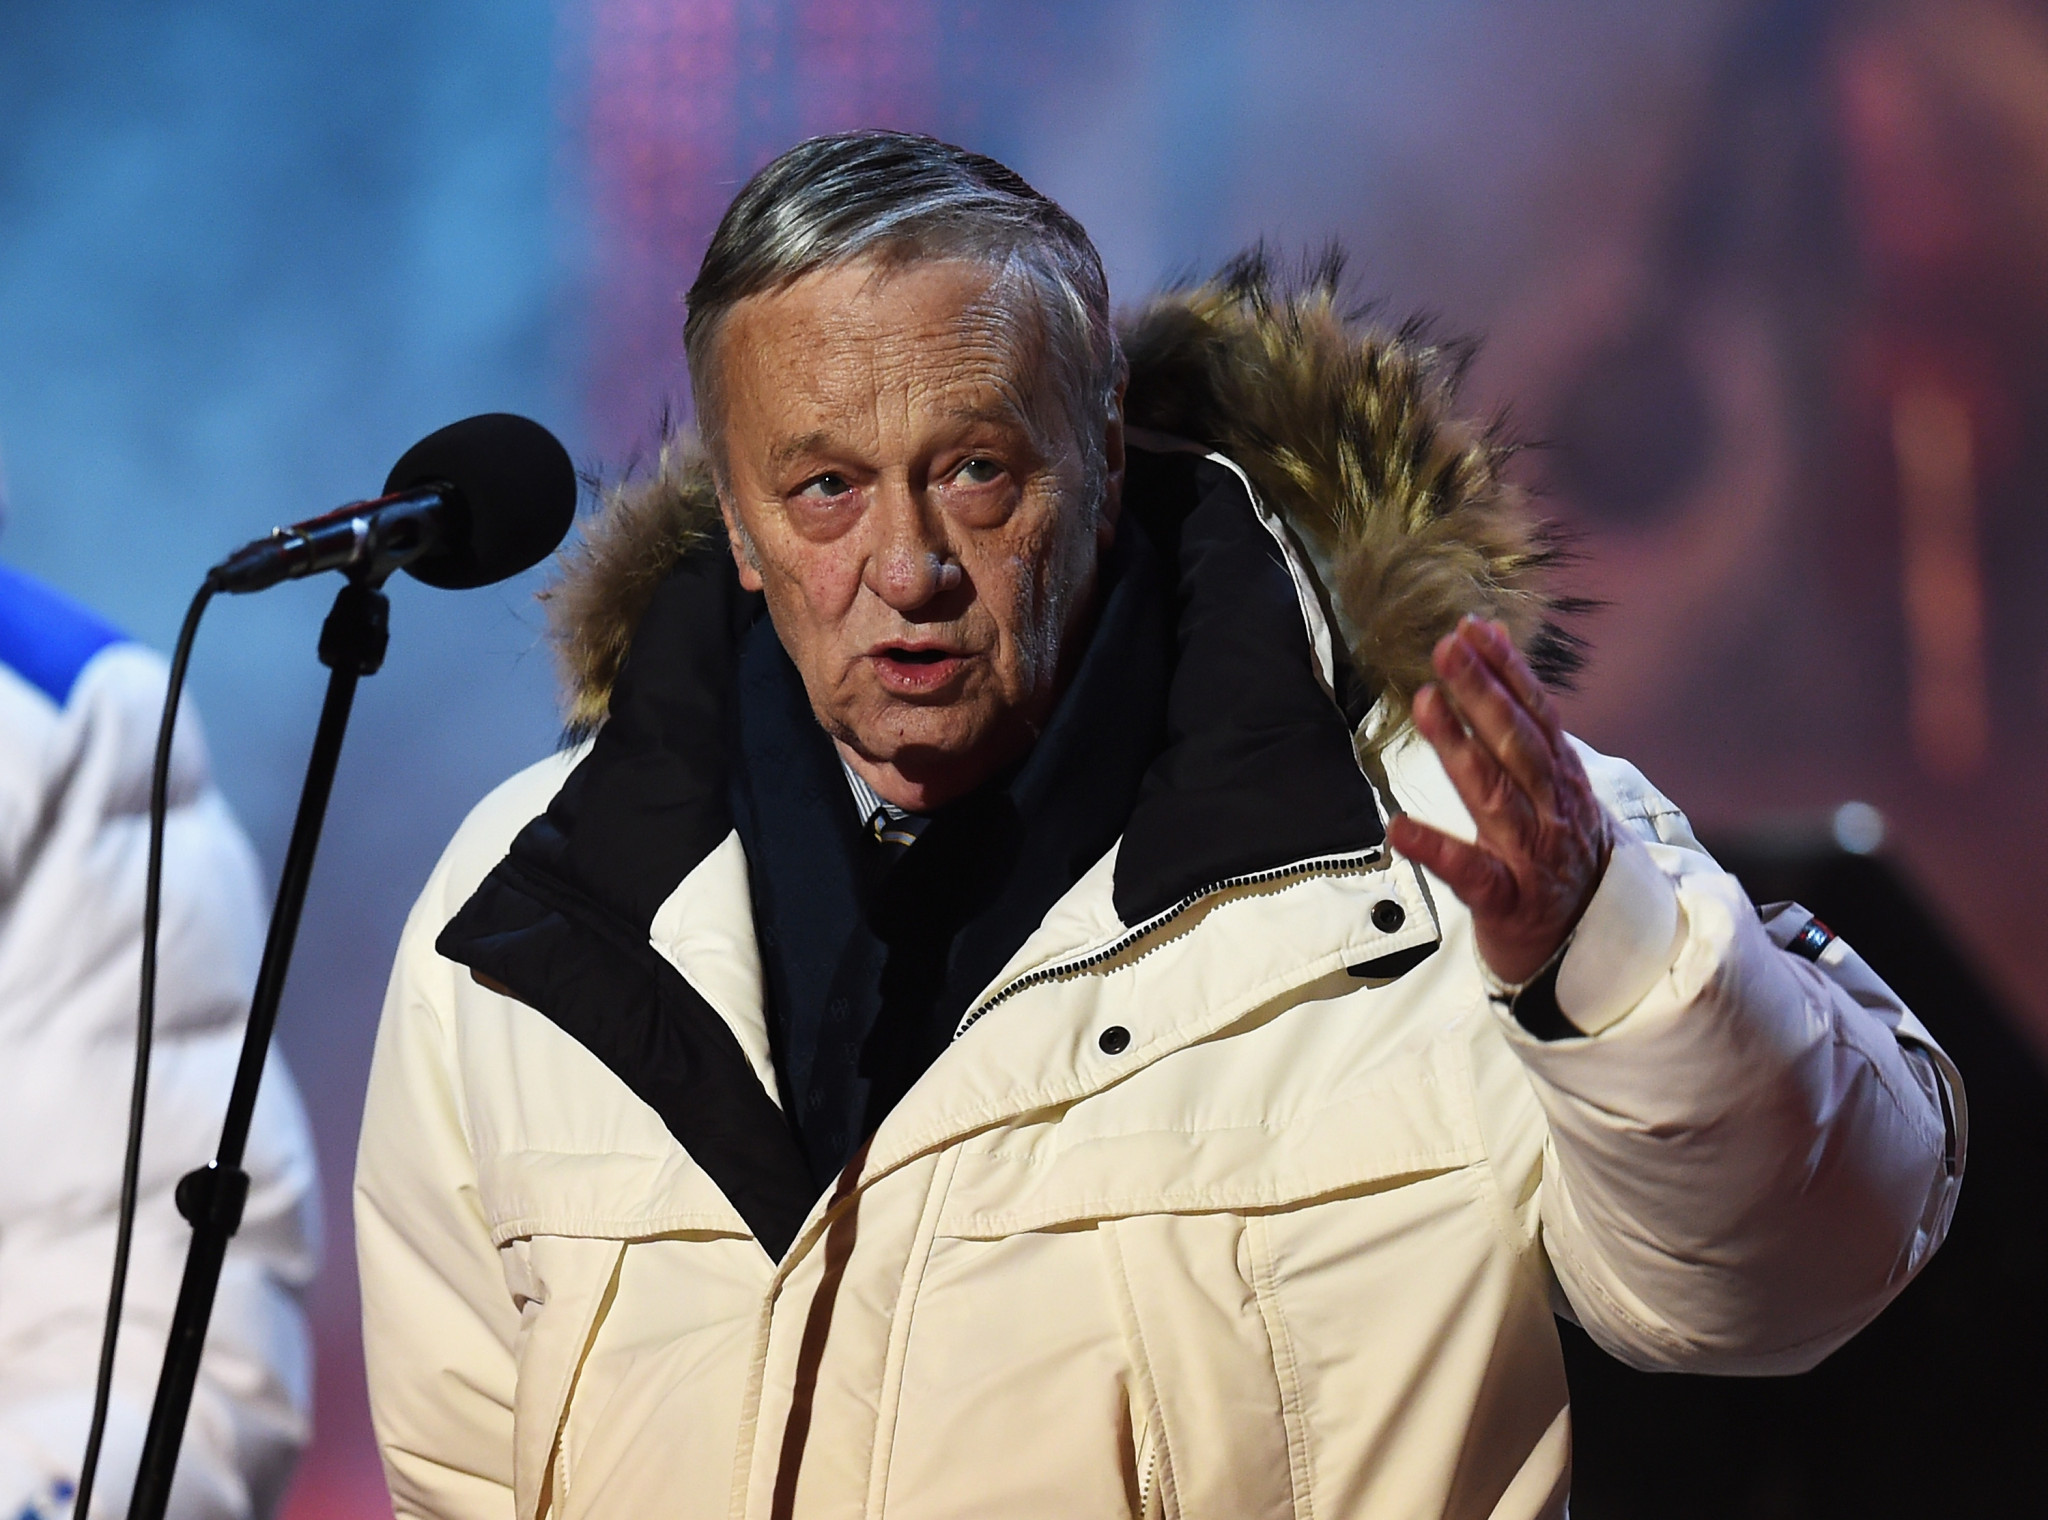 FIS to hold ceremony in honour of former President Gian Franco Kasper after December's World Cup event in St Moritz